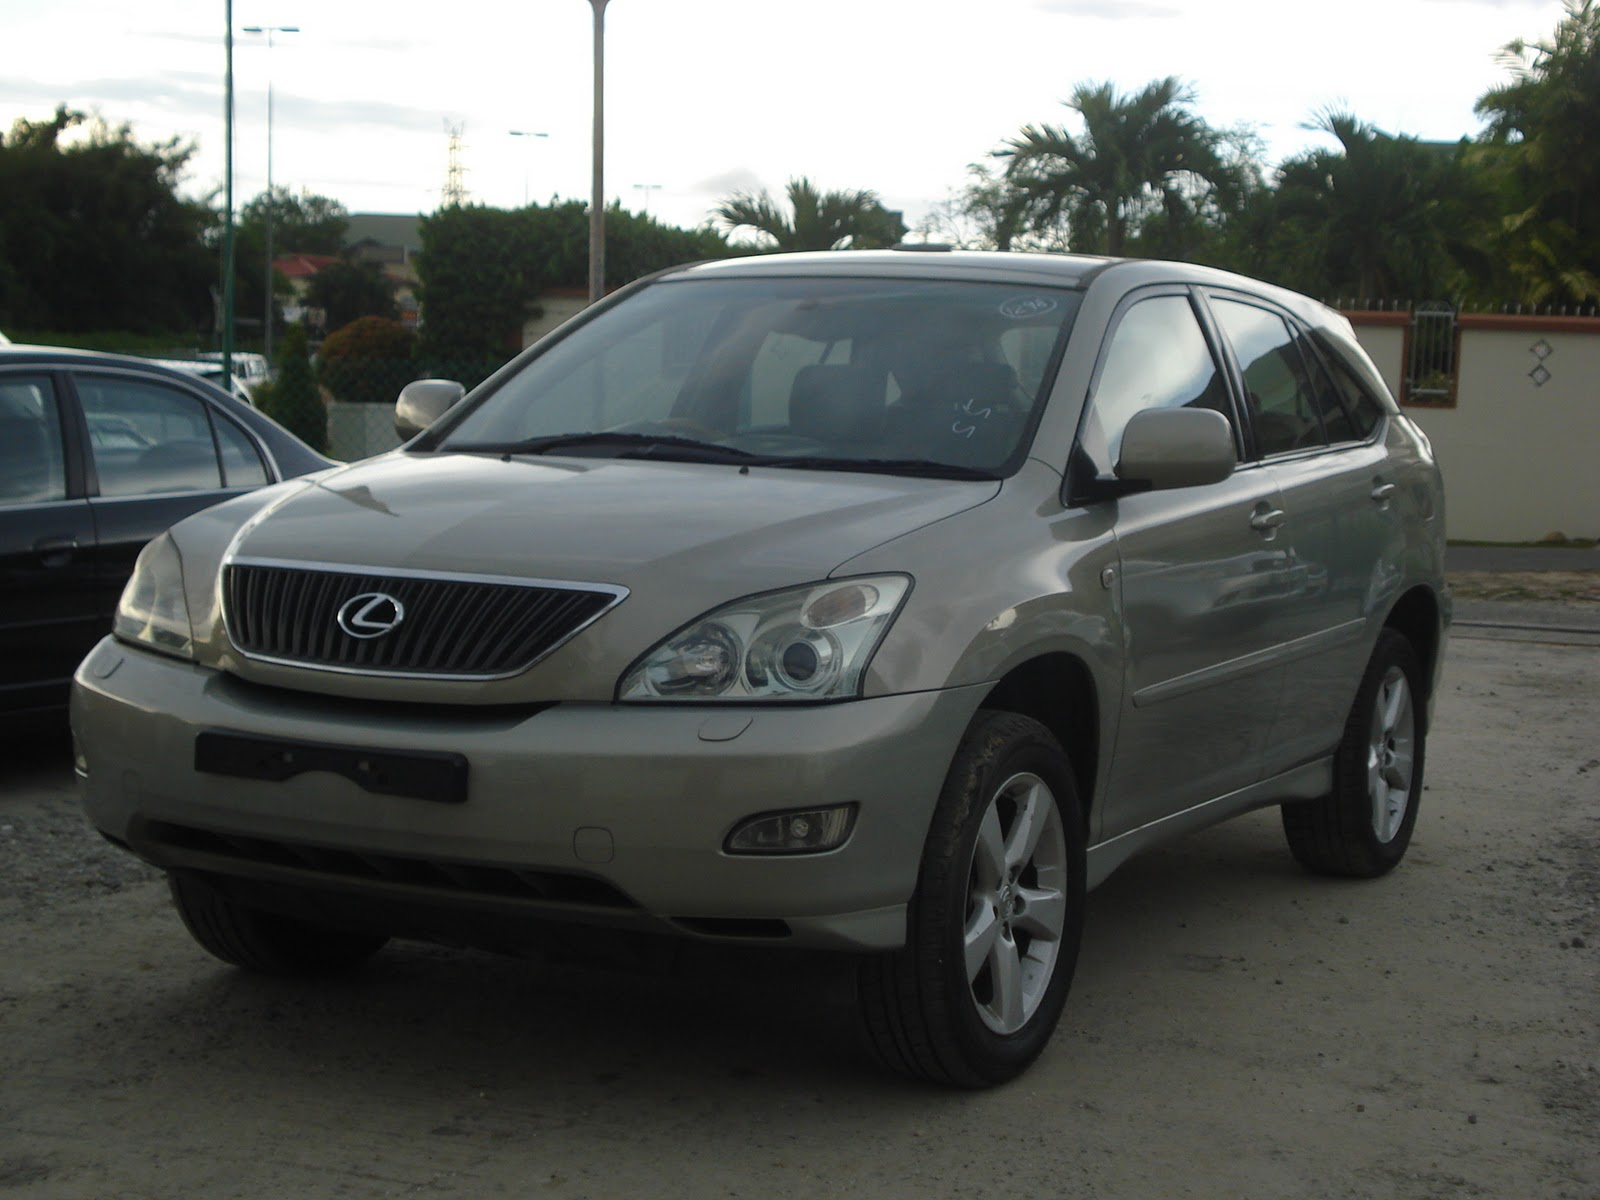 Used Cars Cheap: The Best Quality Cheap Used Car @Brunei